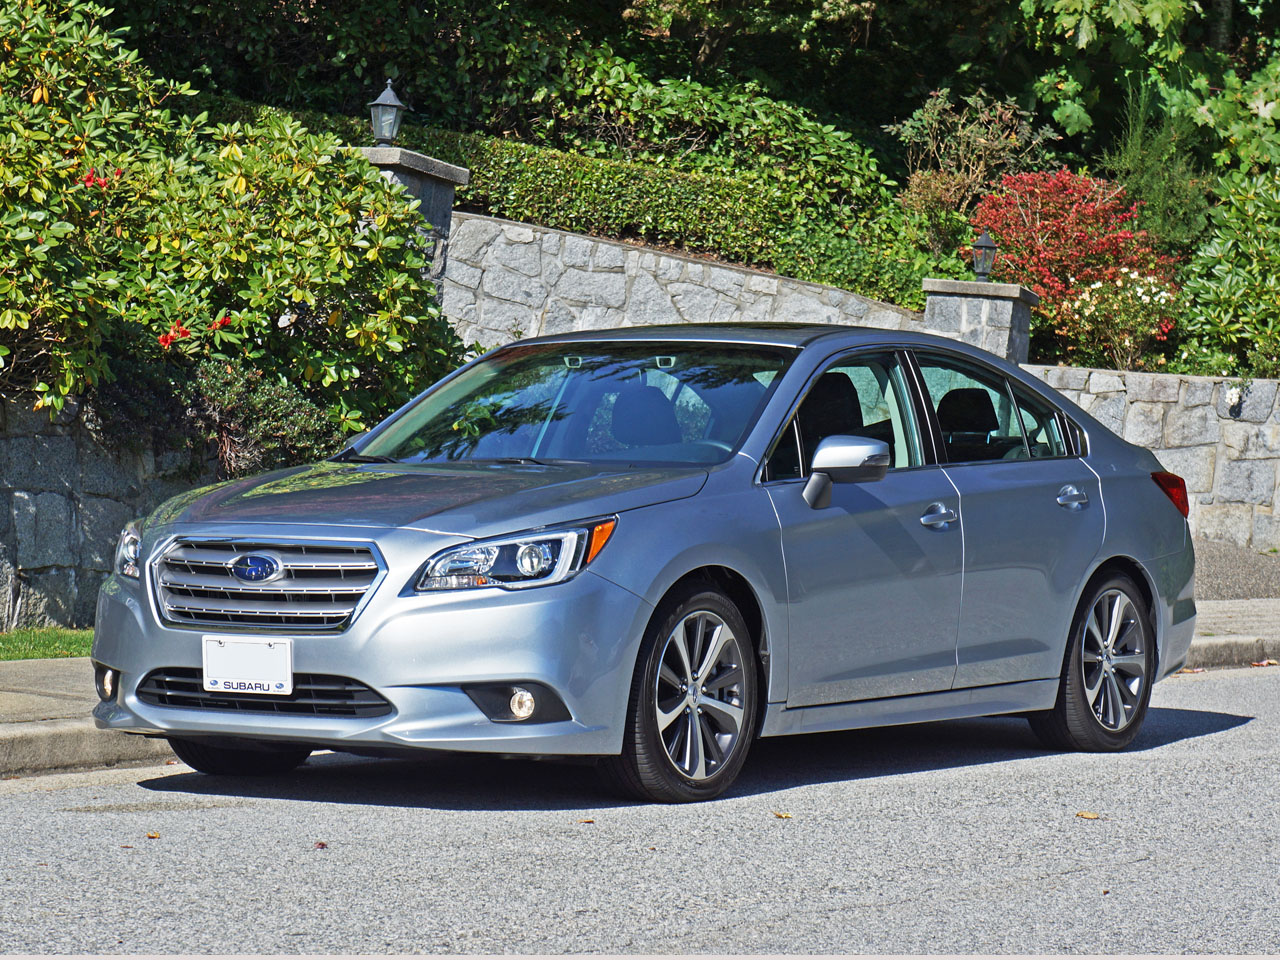 2015 subaru legacy 3 6r limited road test review. Black Bedroom Furniture Sets. Home Design Ideas